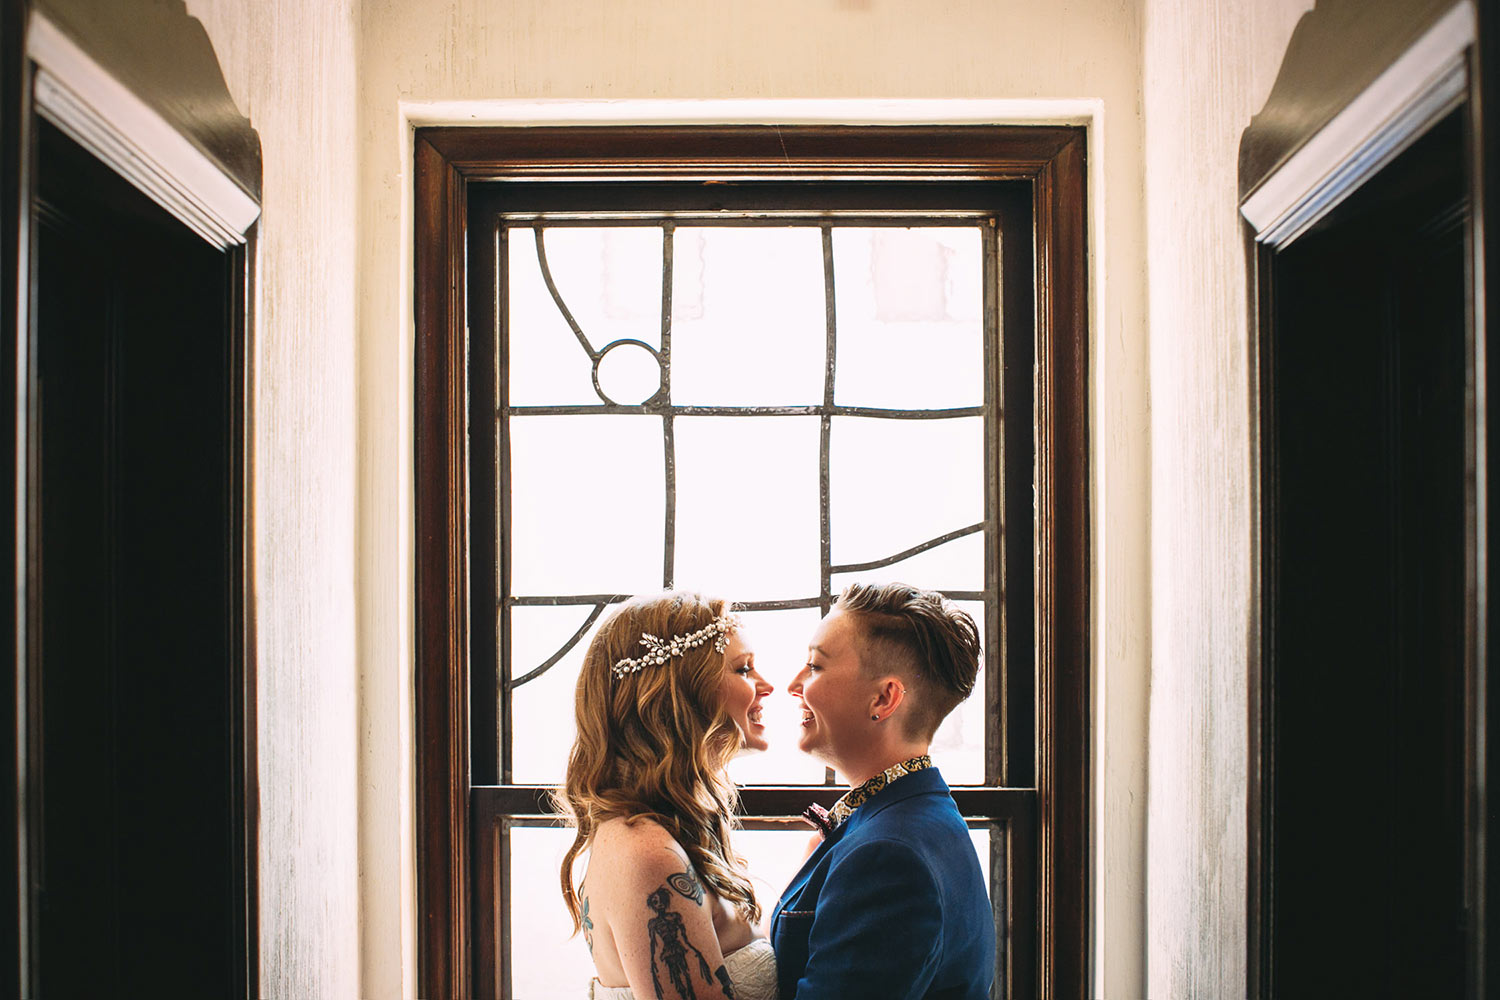 Joyful brides smiling at each other in front of window, by Callaway Gable